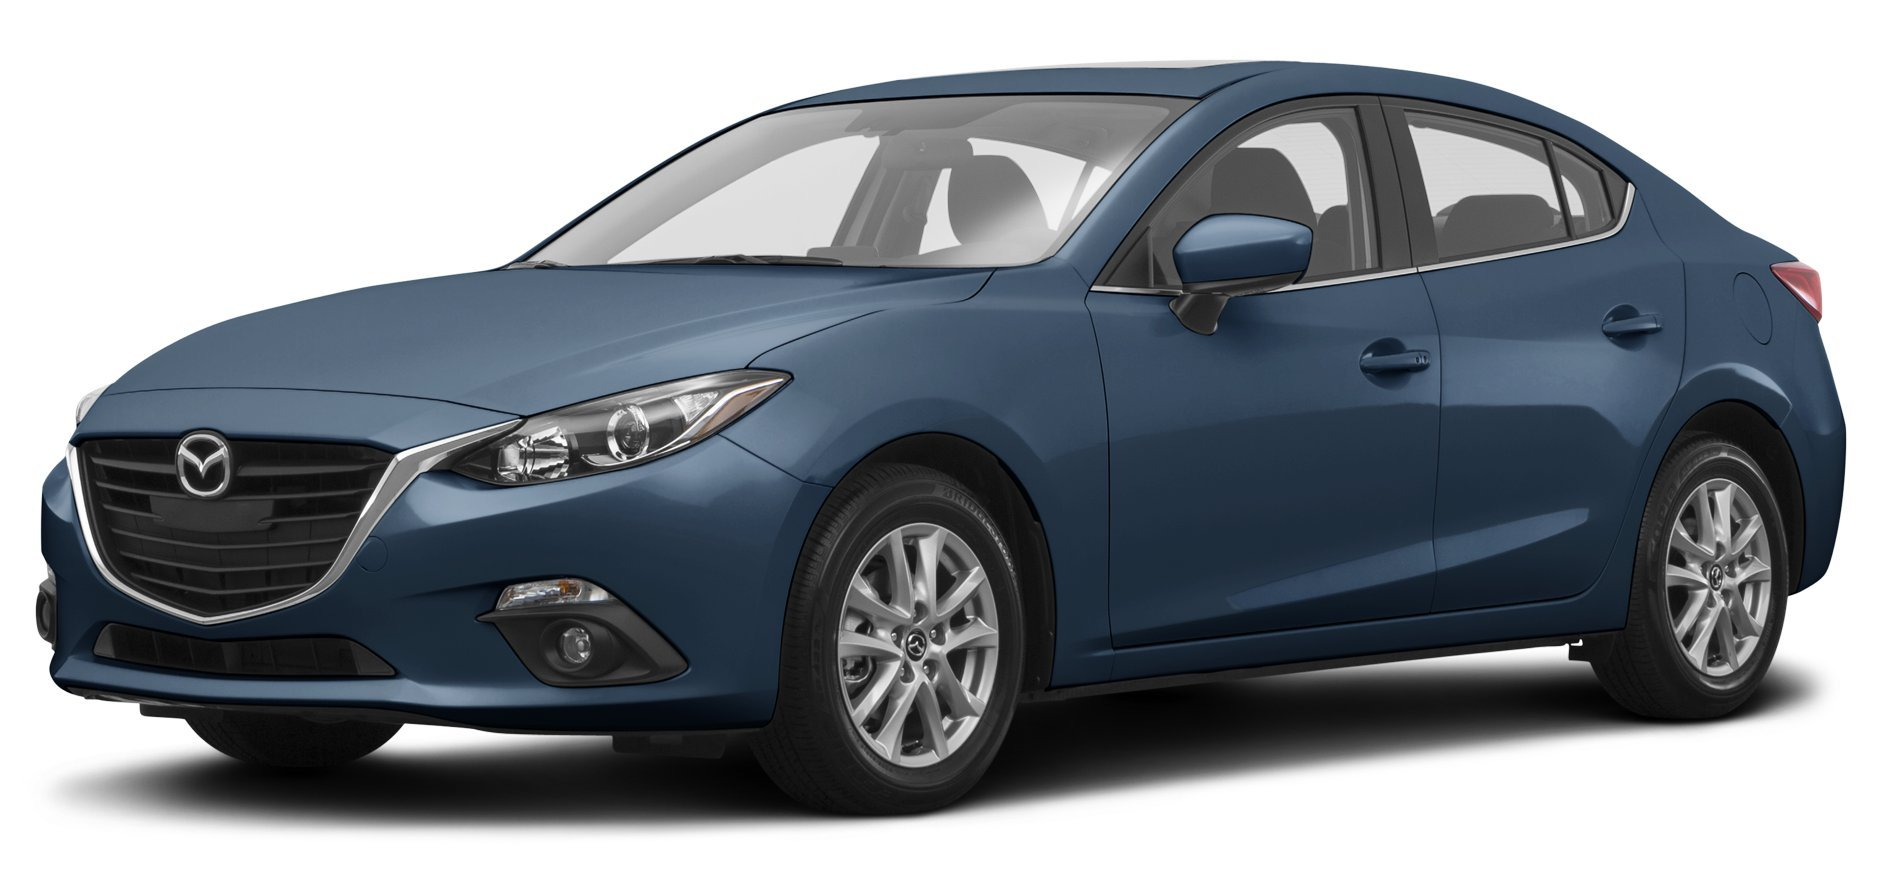 Amazoncom 2016 Mazda 3 Reviews Images and Specs Vehicles